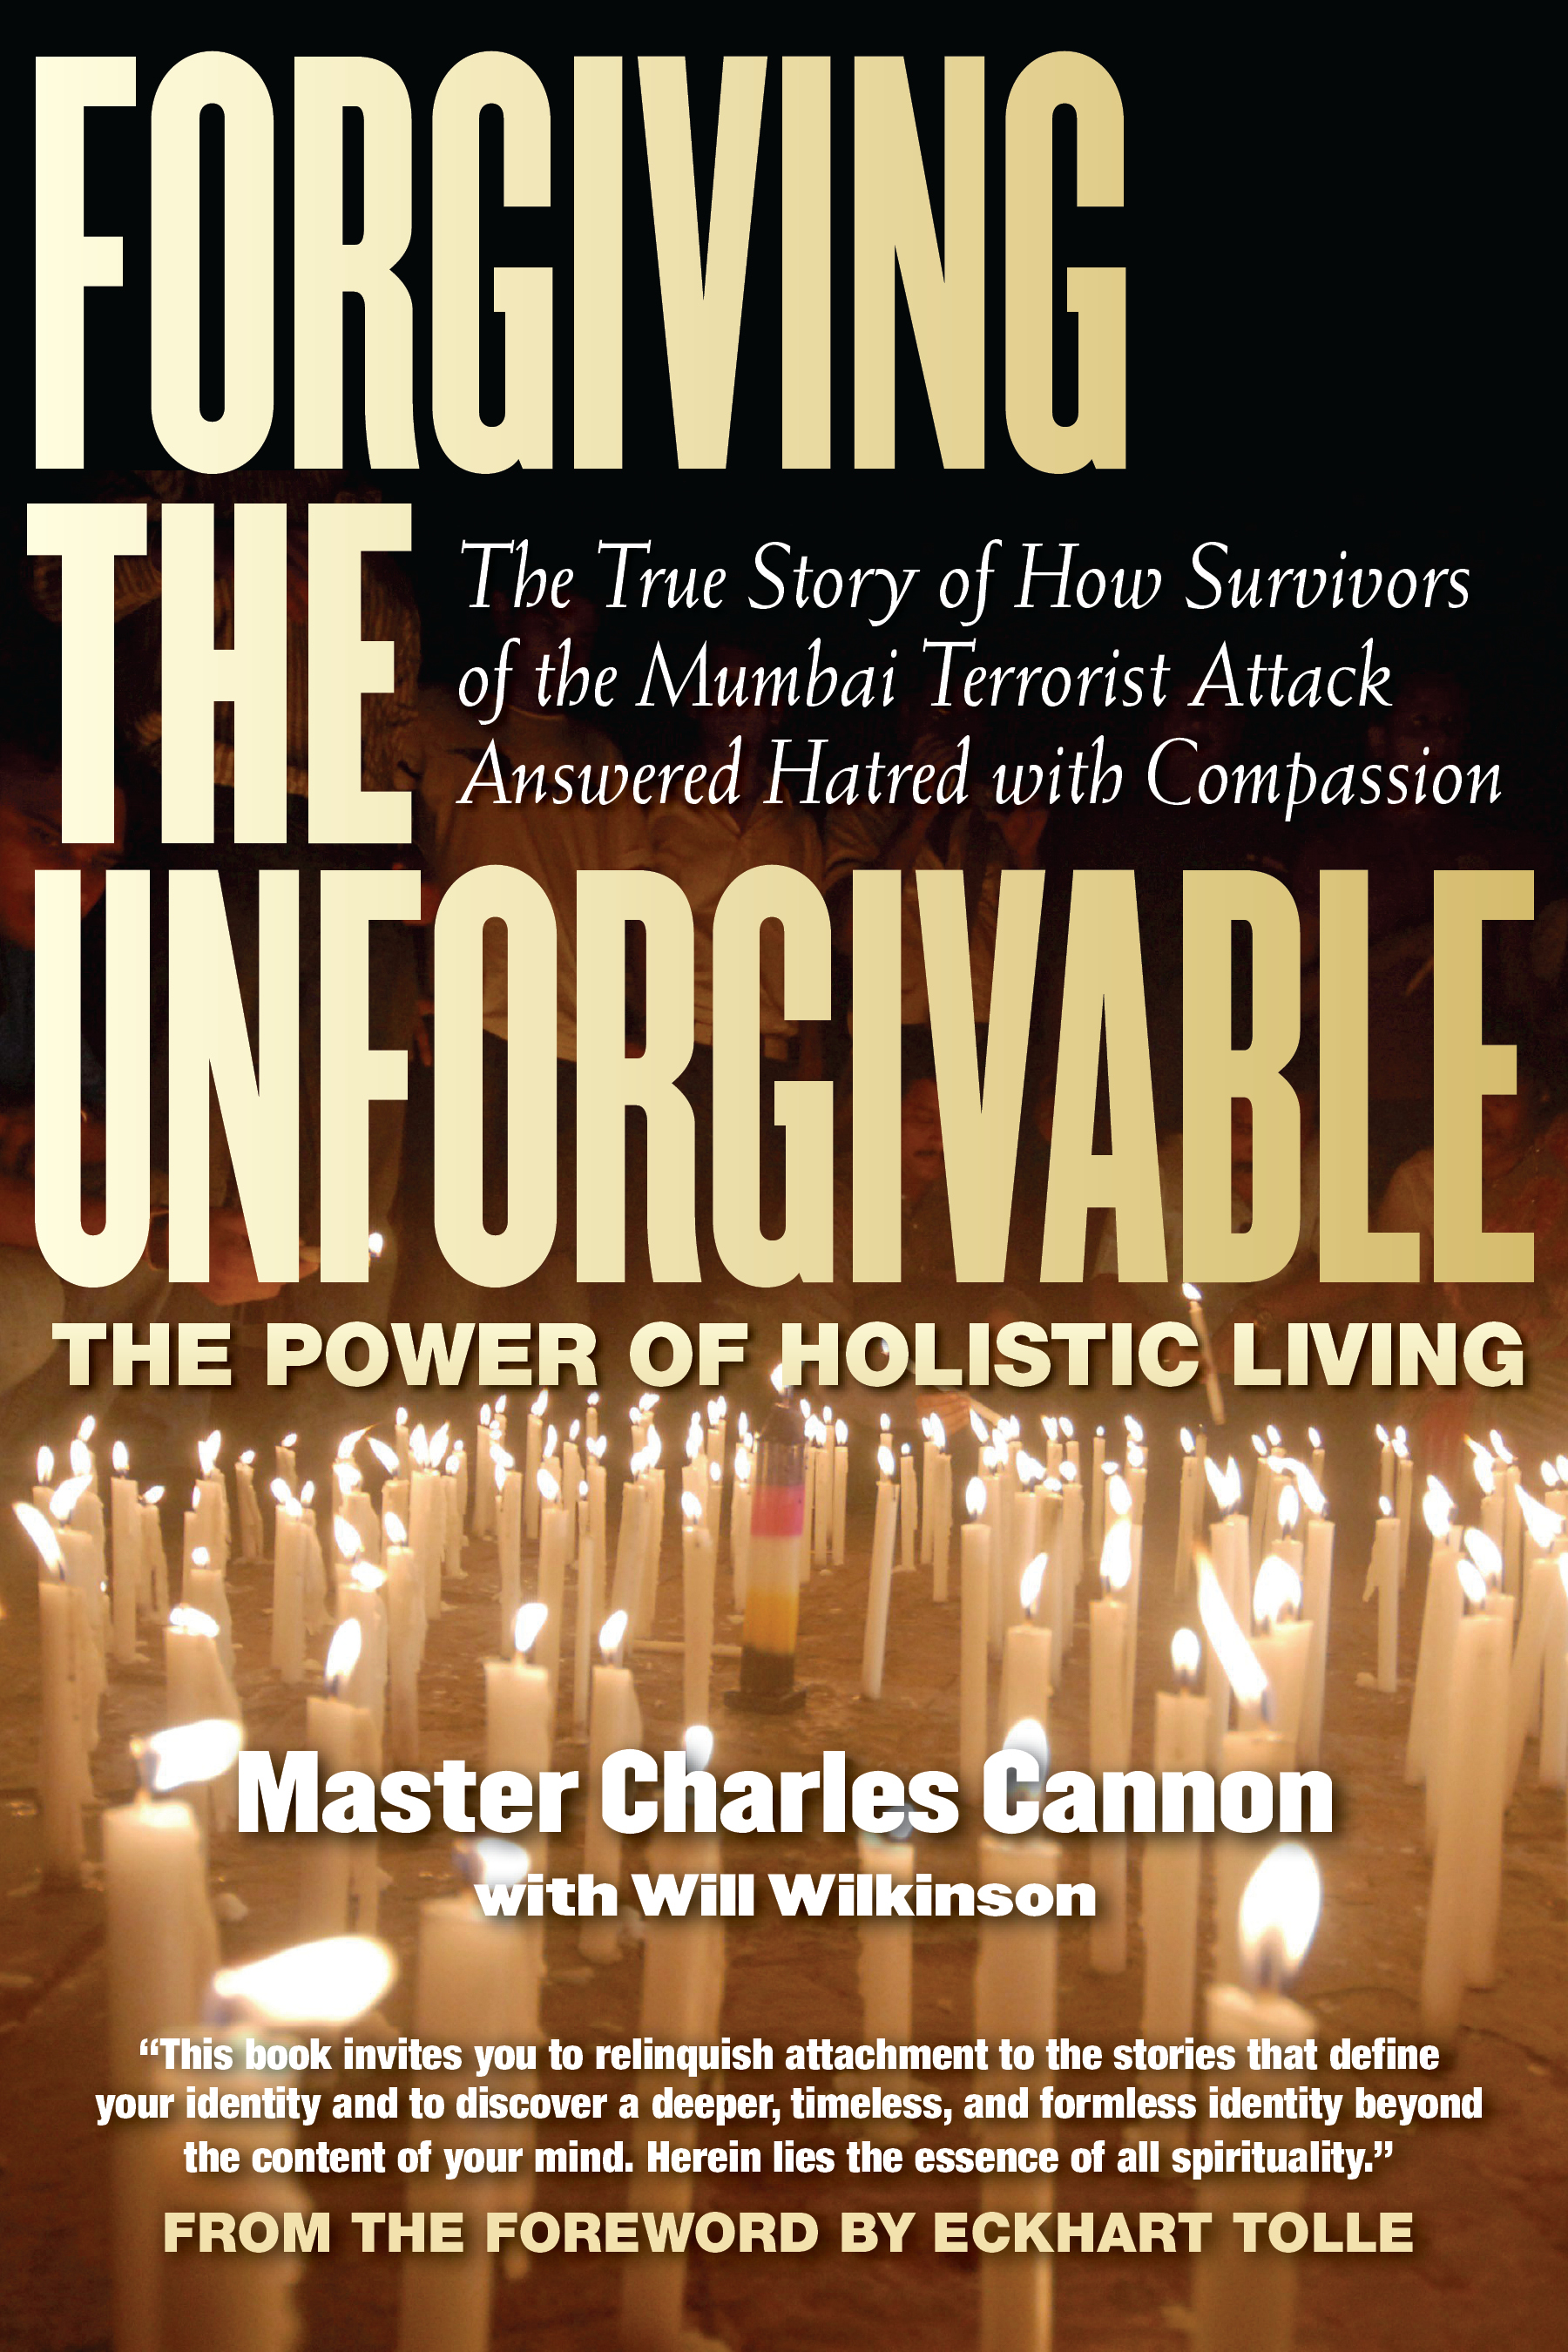 Forgiving the Unforgivable: The True Story of How Survivors of the Mumbai Terrorist Attack Answered Hatred with Compassion By: Eckhart Tolle,Master Charles Cannon,Will Wilkerson